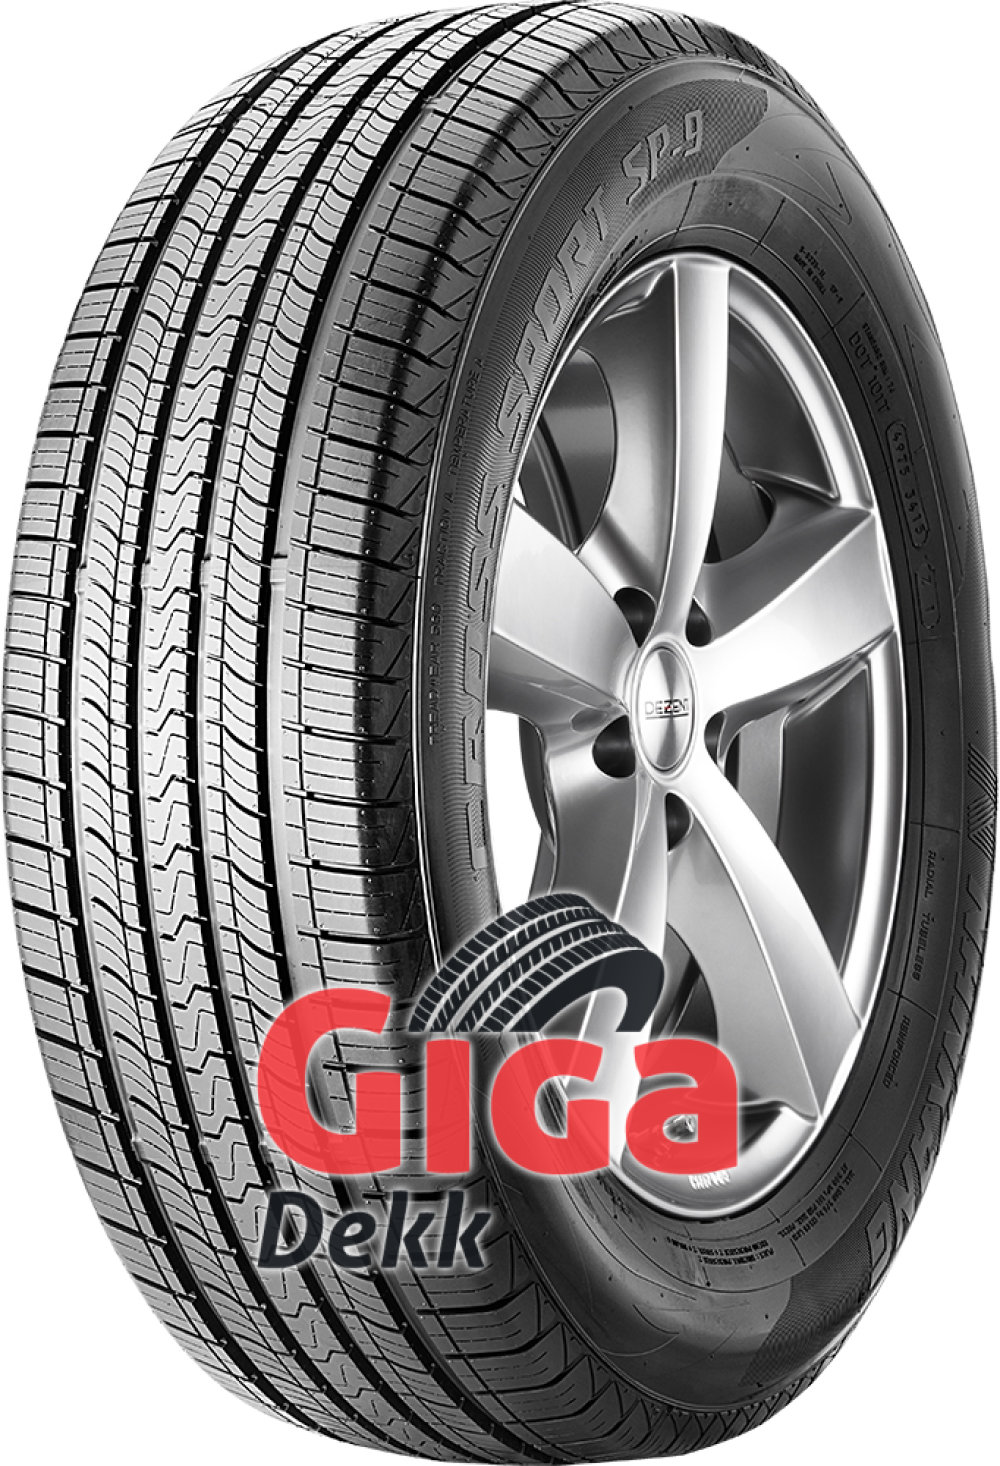 Nankang Cross Sport SP-9 ( 225/65 R17 102V )